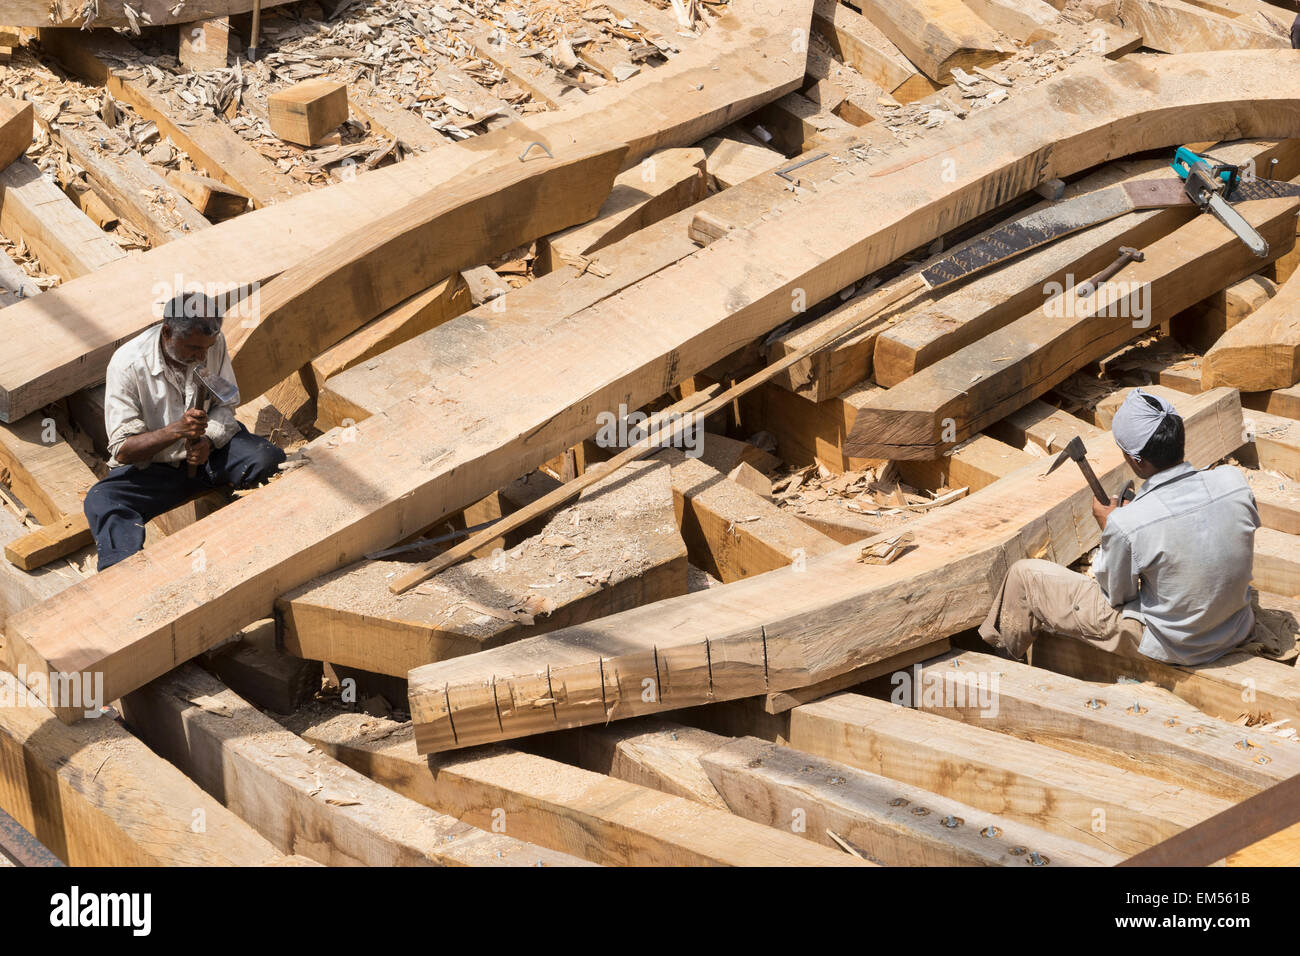 Building a traditional wooden dhow cargo ship in shipyard beside The Creek River in Dubai United Arab Emirates - Stock Image